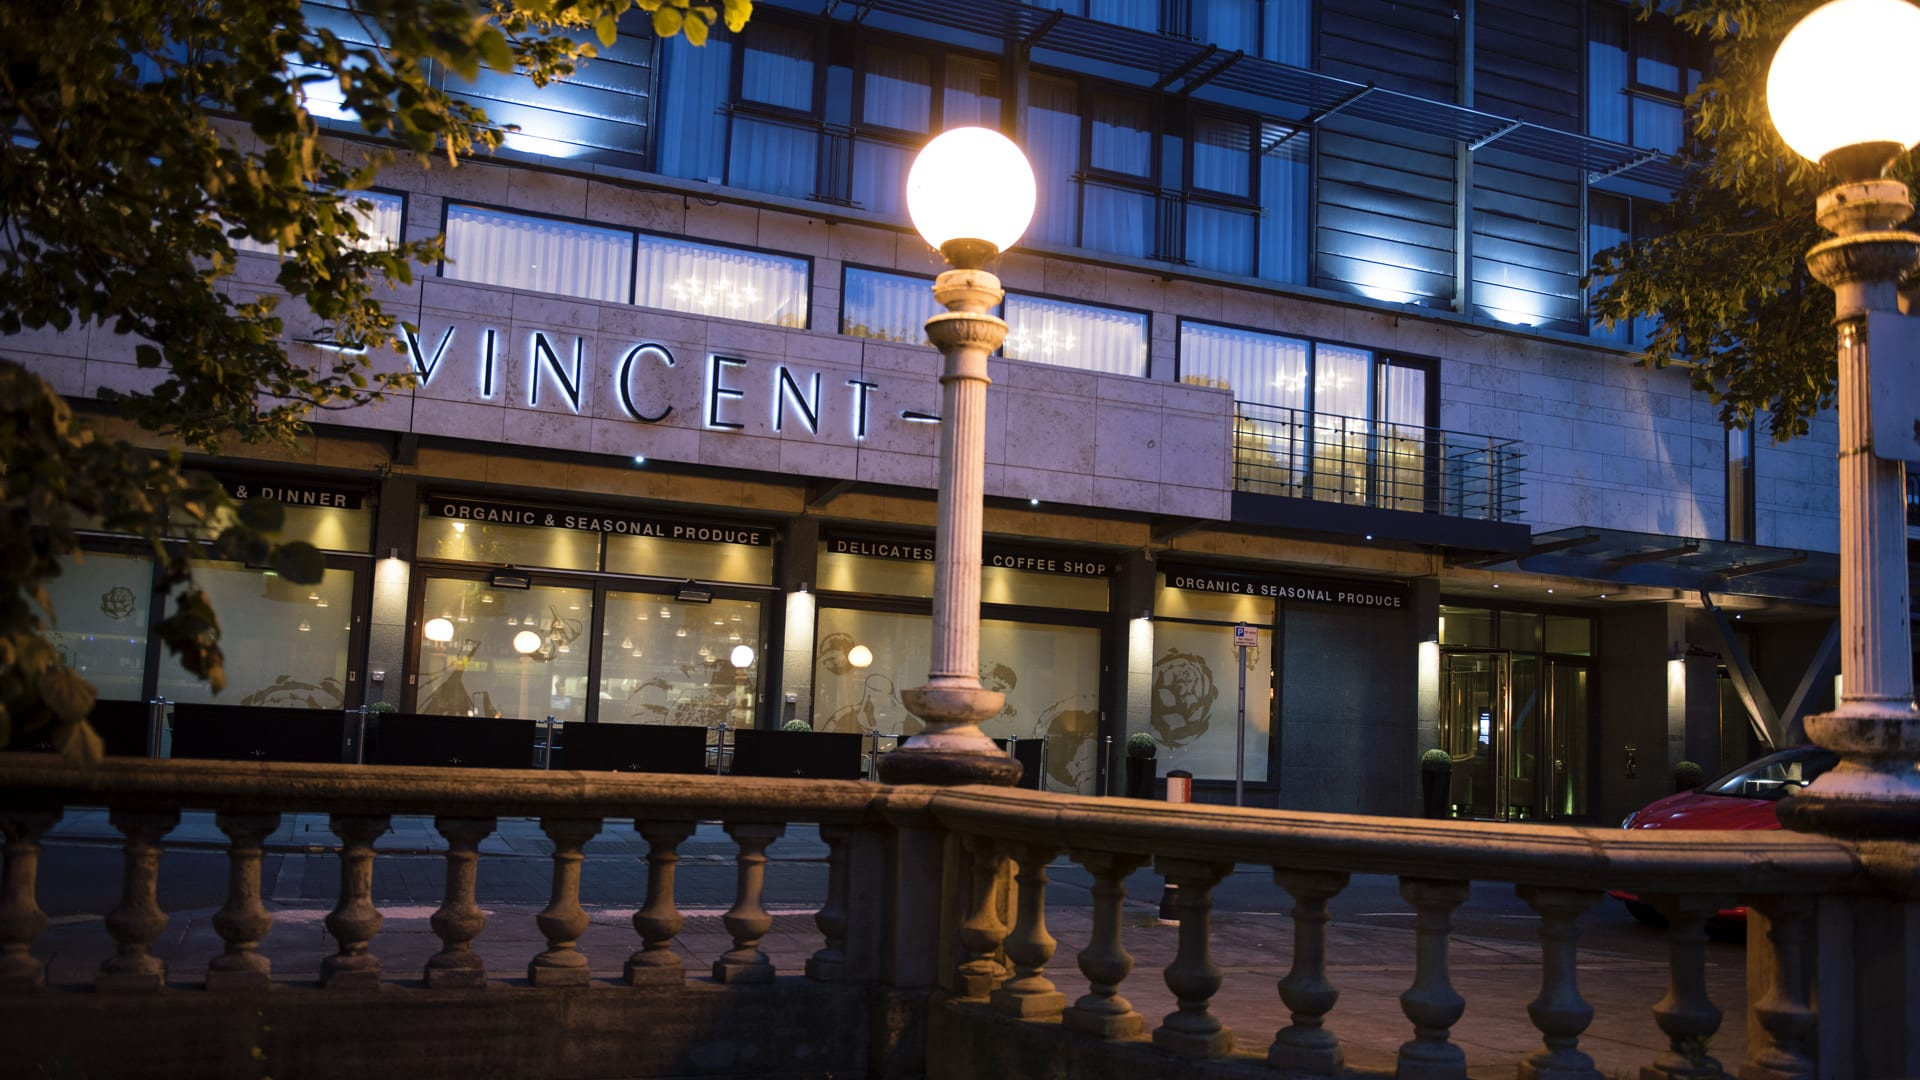 The Vincent - Southport